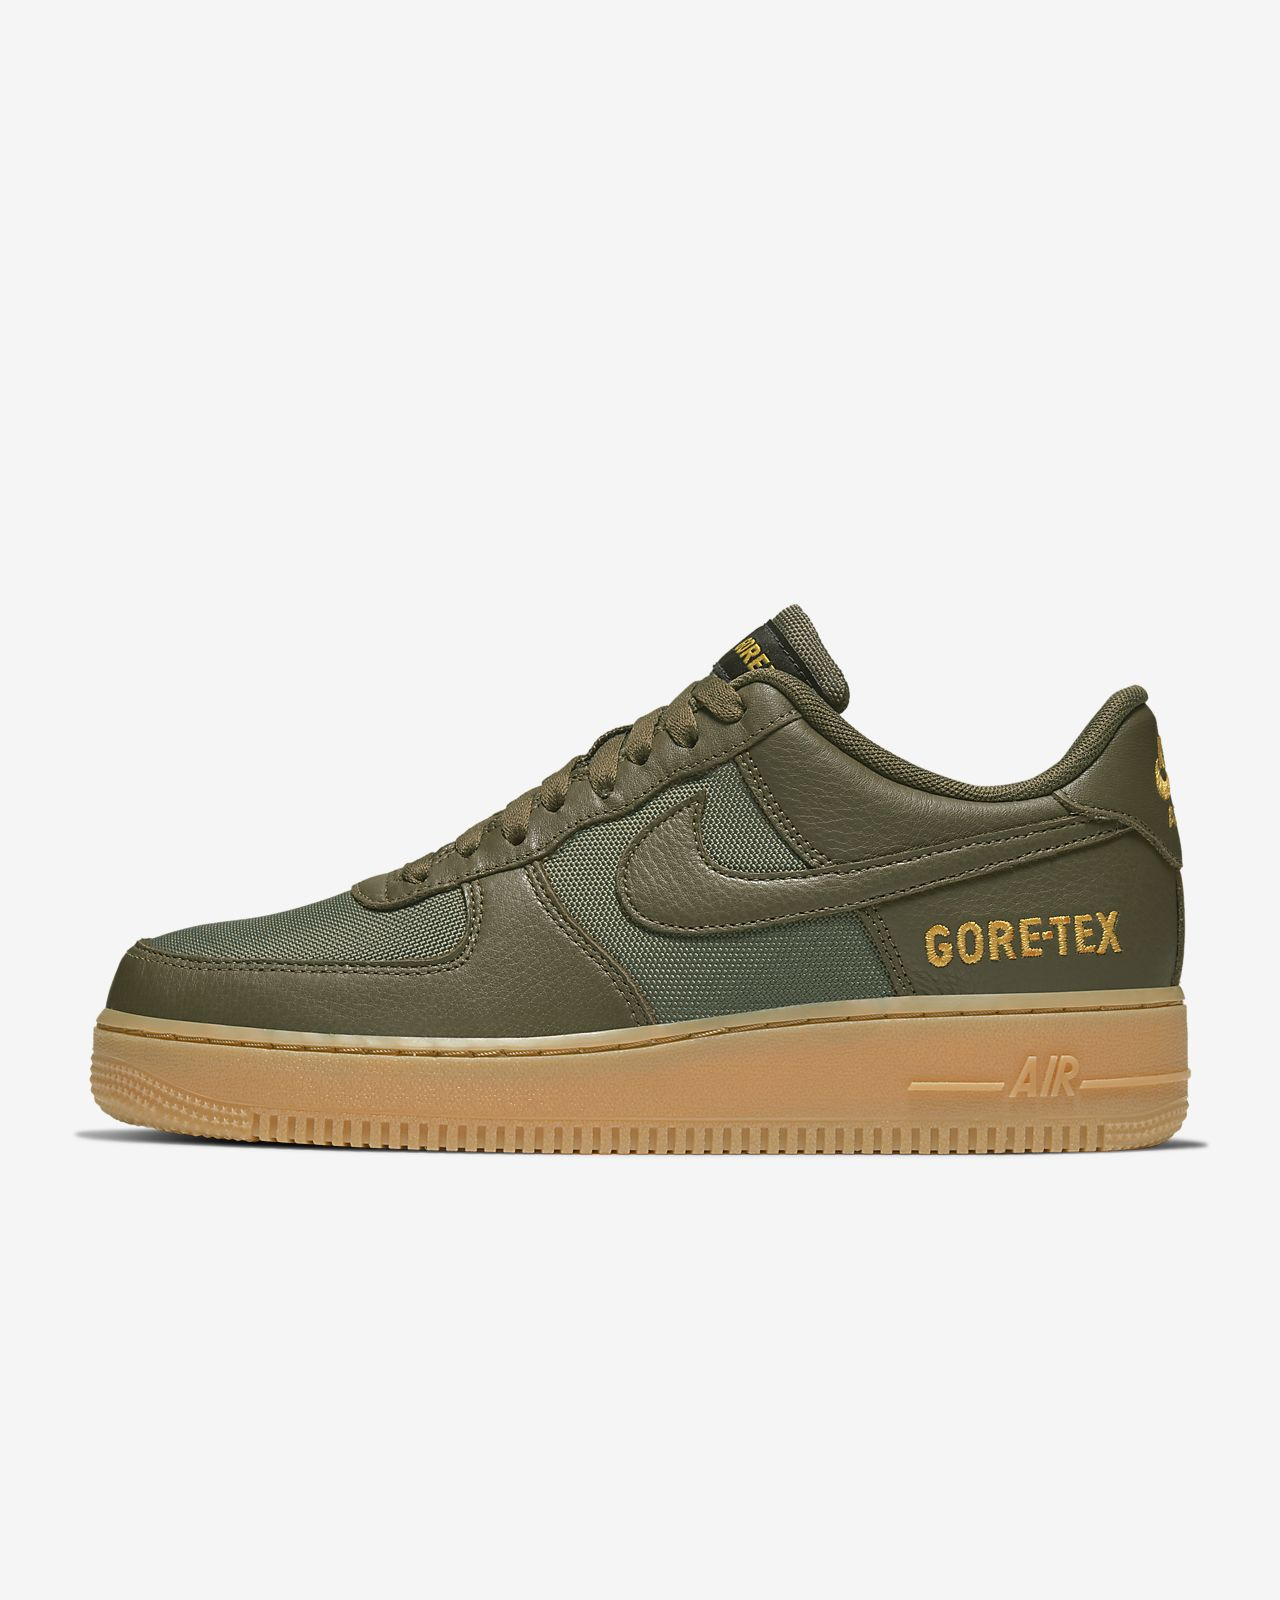 Nike Air Force 1 GORE TEX sko